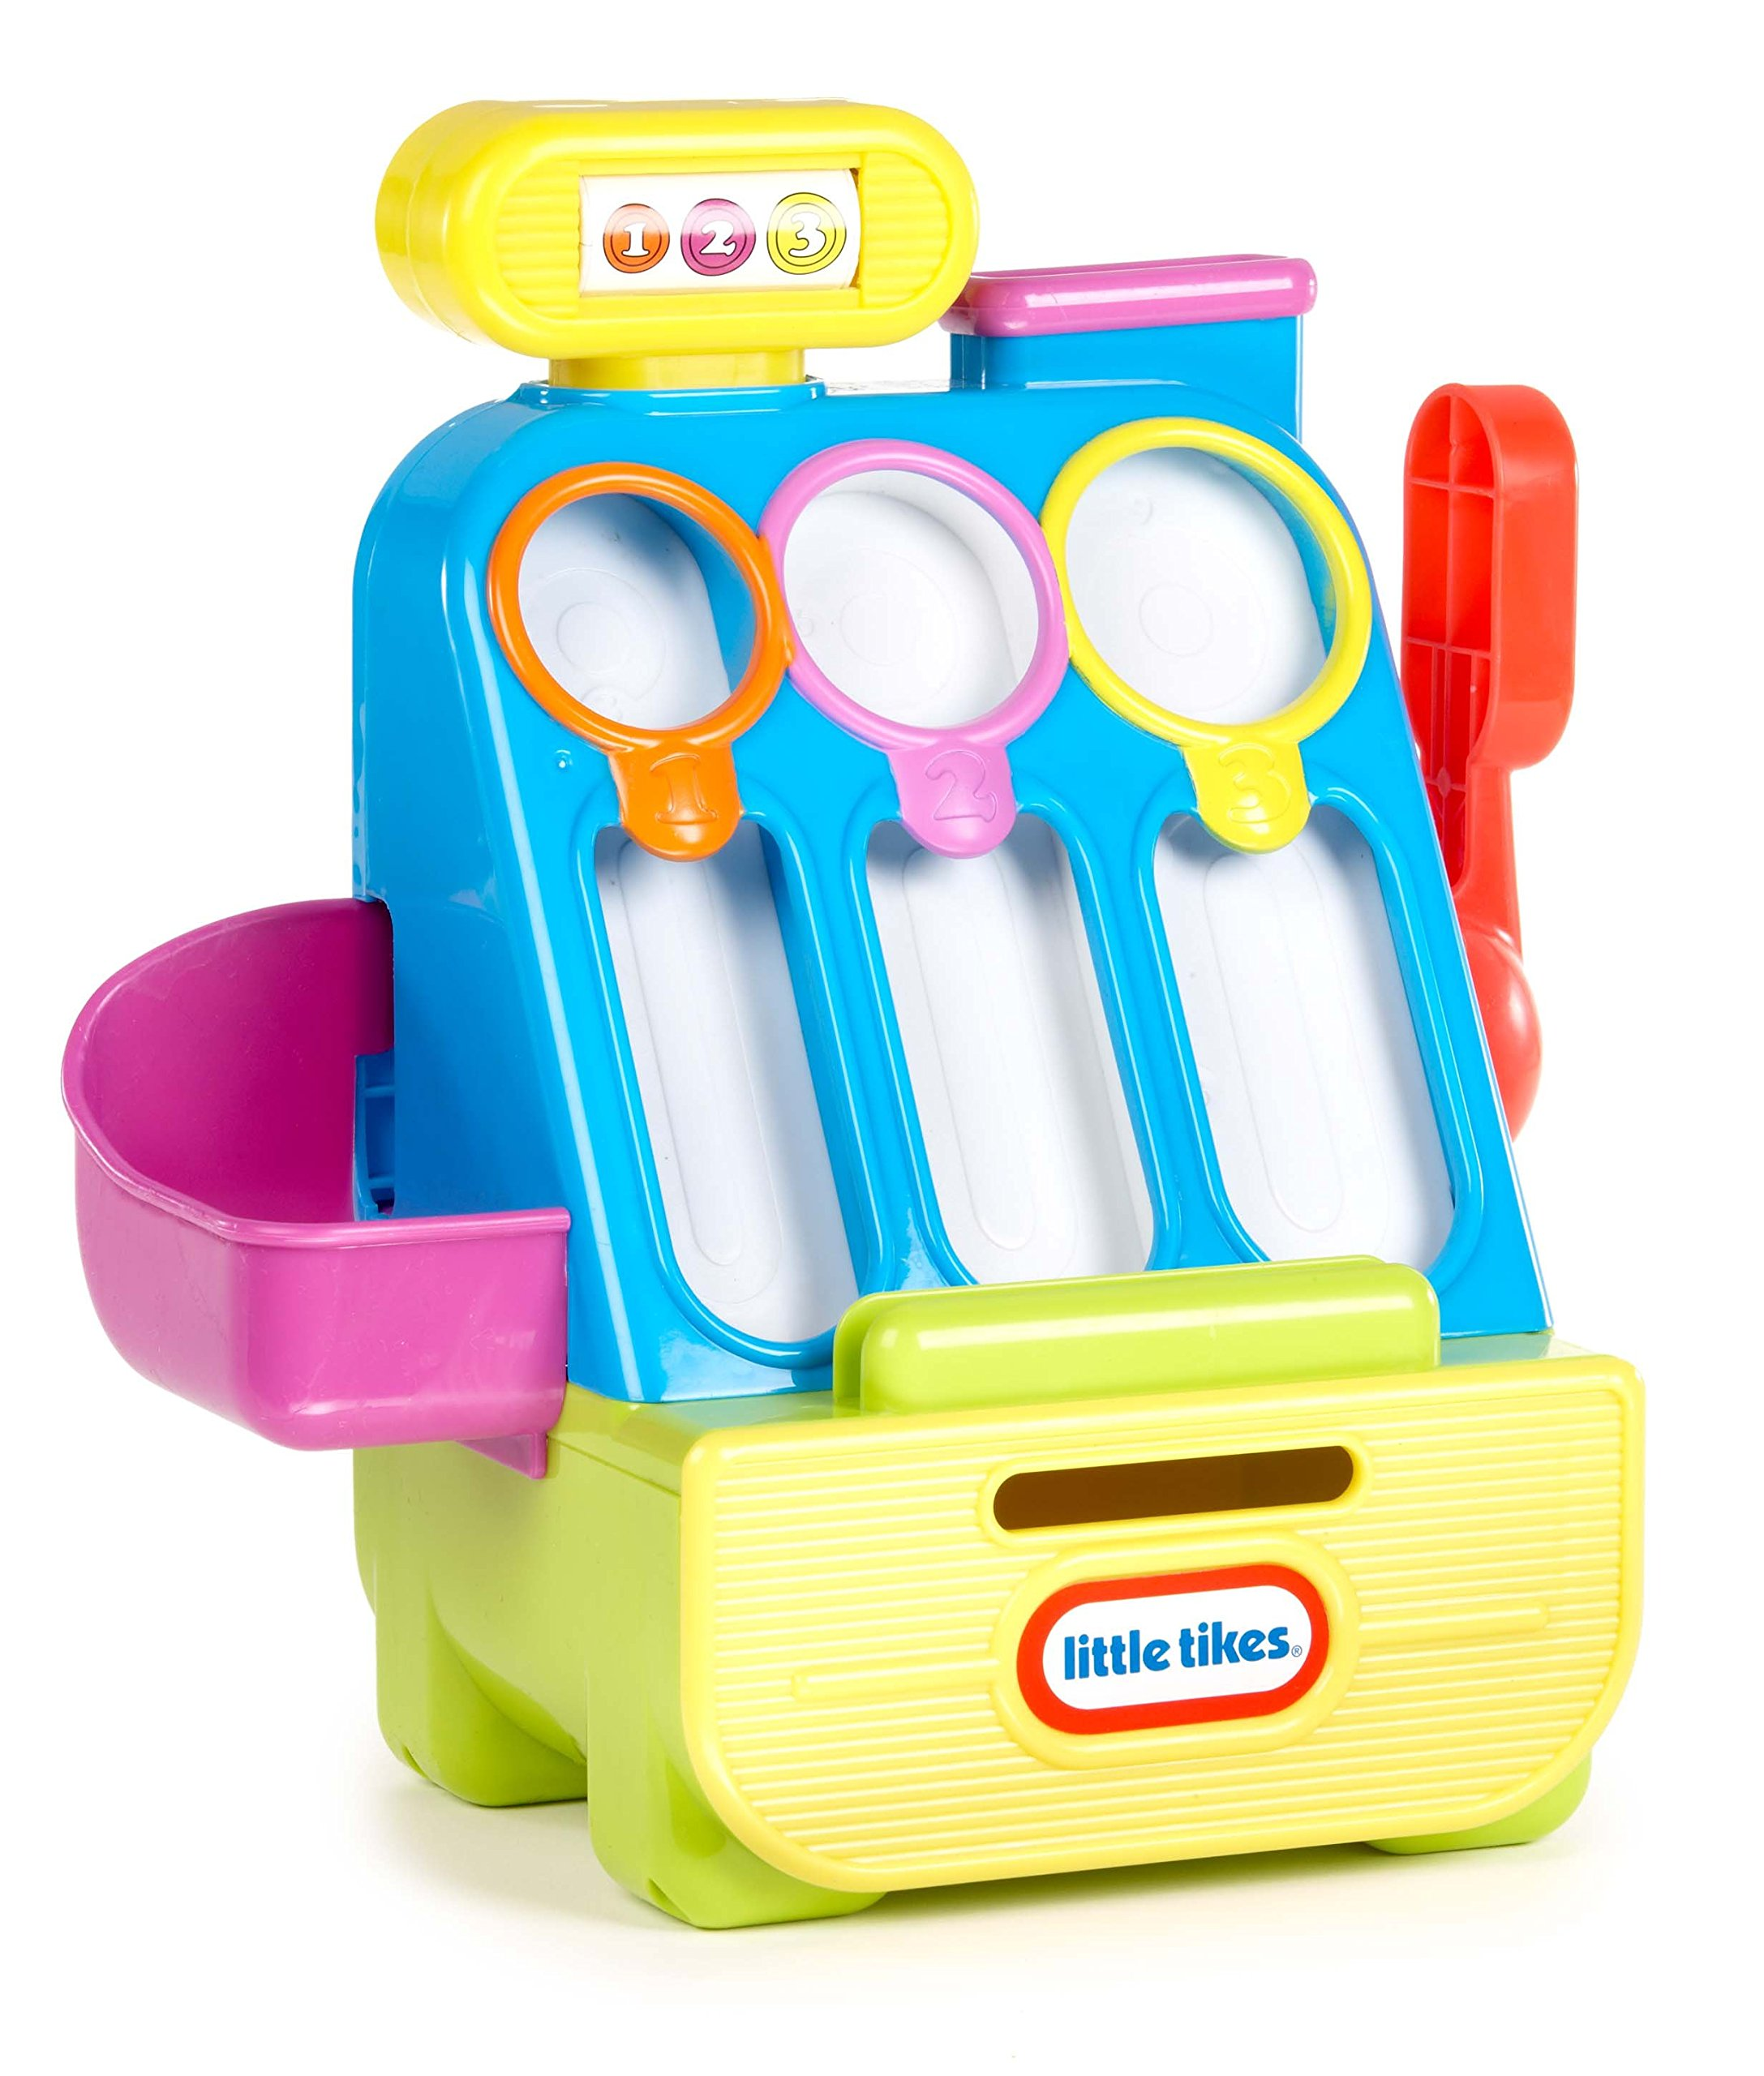 Little Tikes Count 'n Play Cash Register Playset by Little Tikes